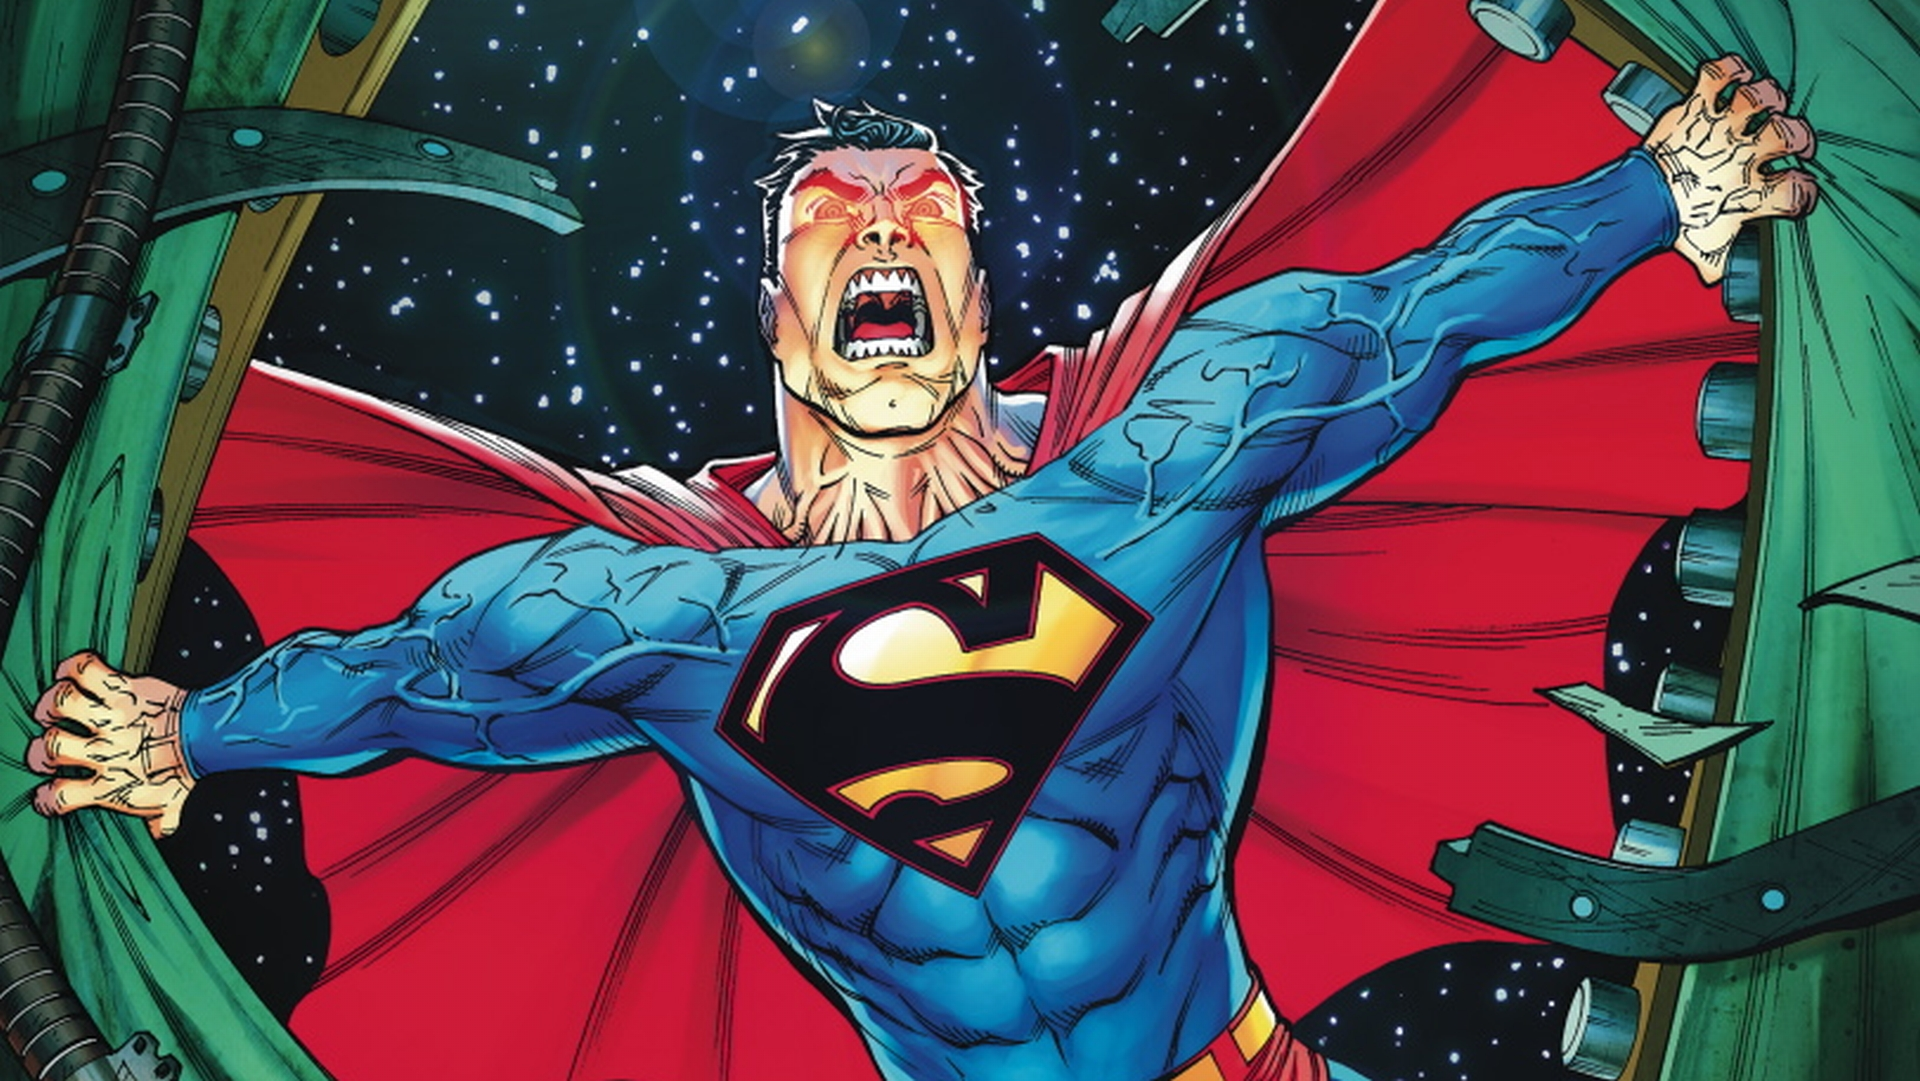 superman comic art wallpaper - photo #39